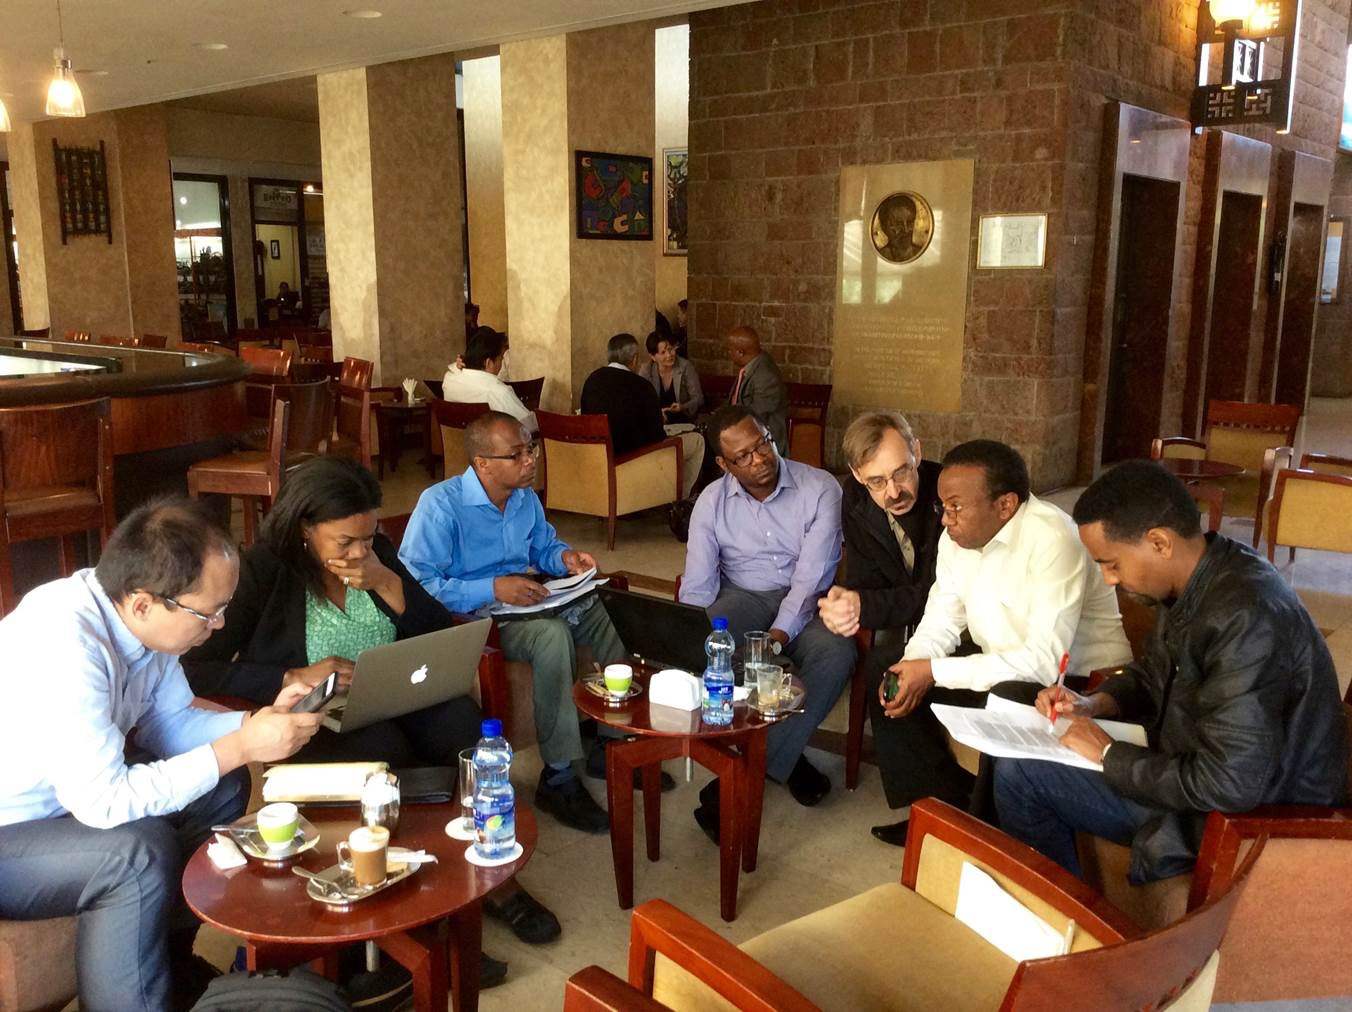 Meeting in Ethiopia